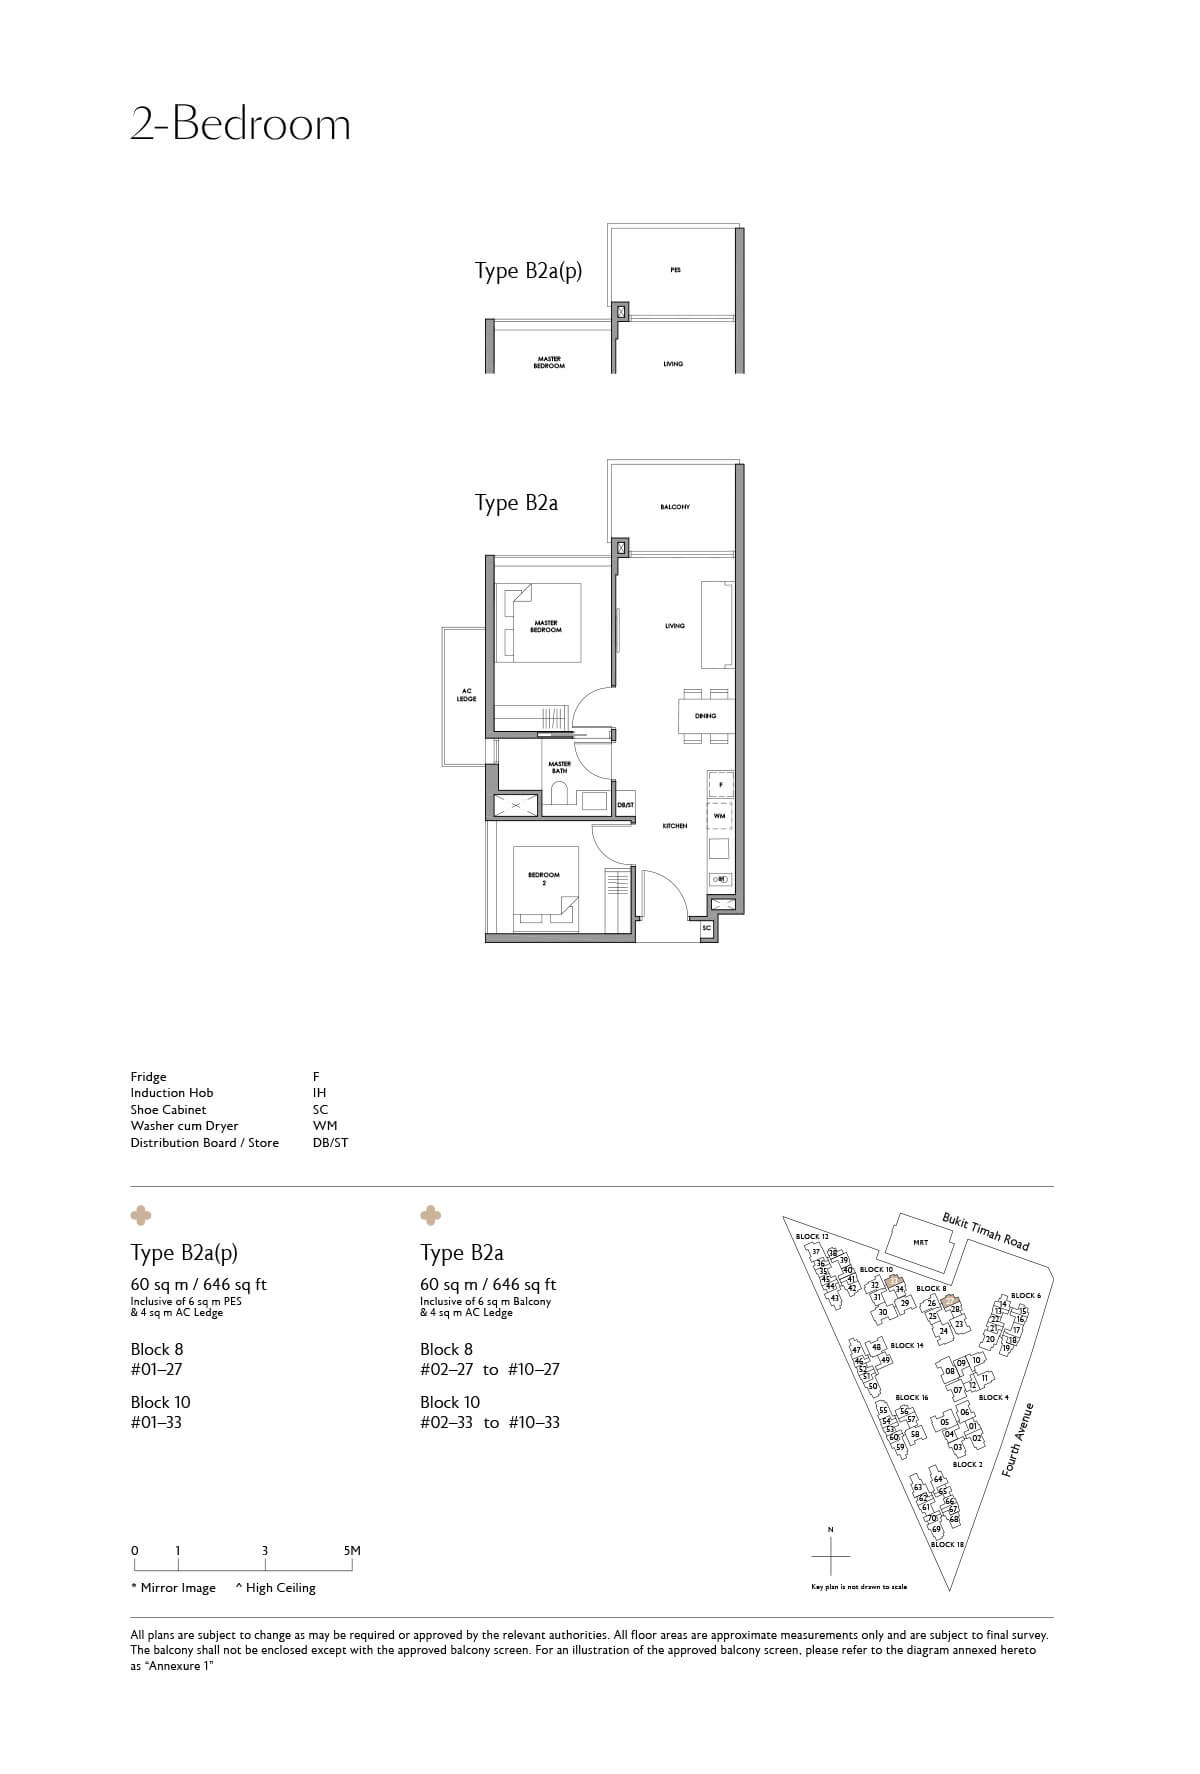 Fourth Avenue Residences Floor Plan 2 Bedroom Type B2a